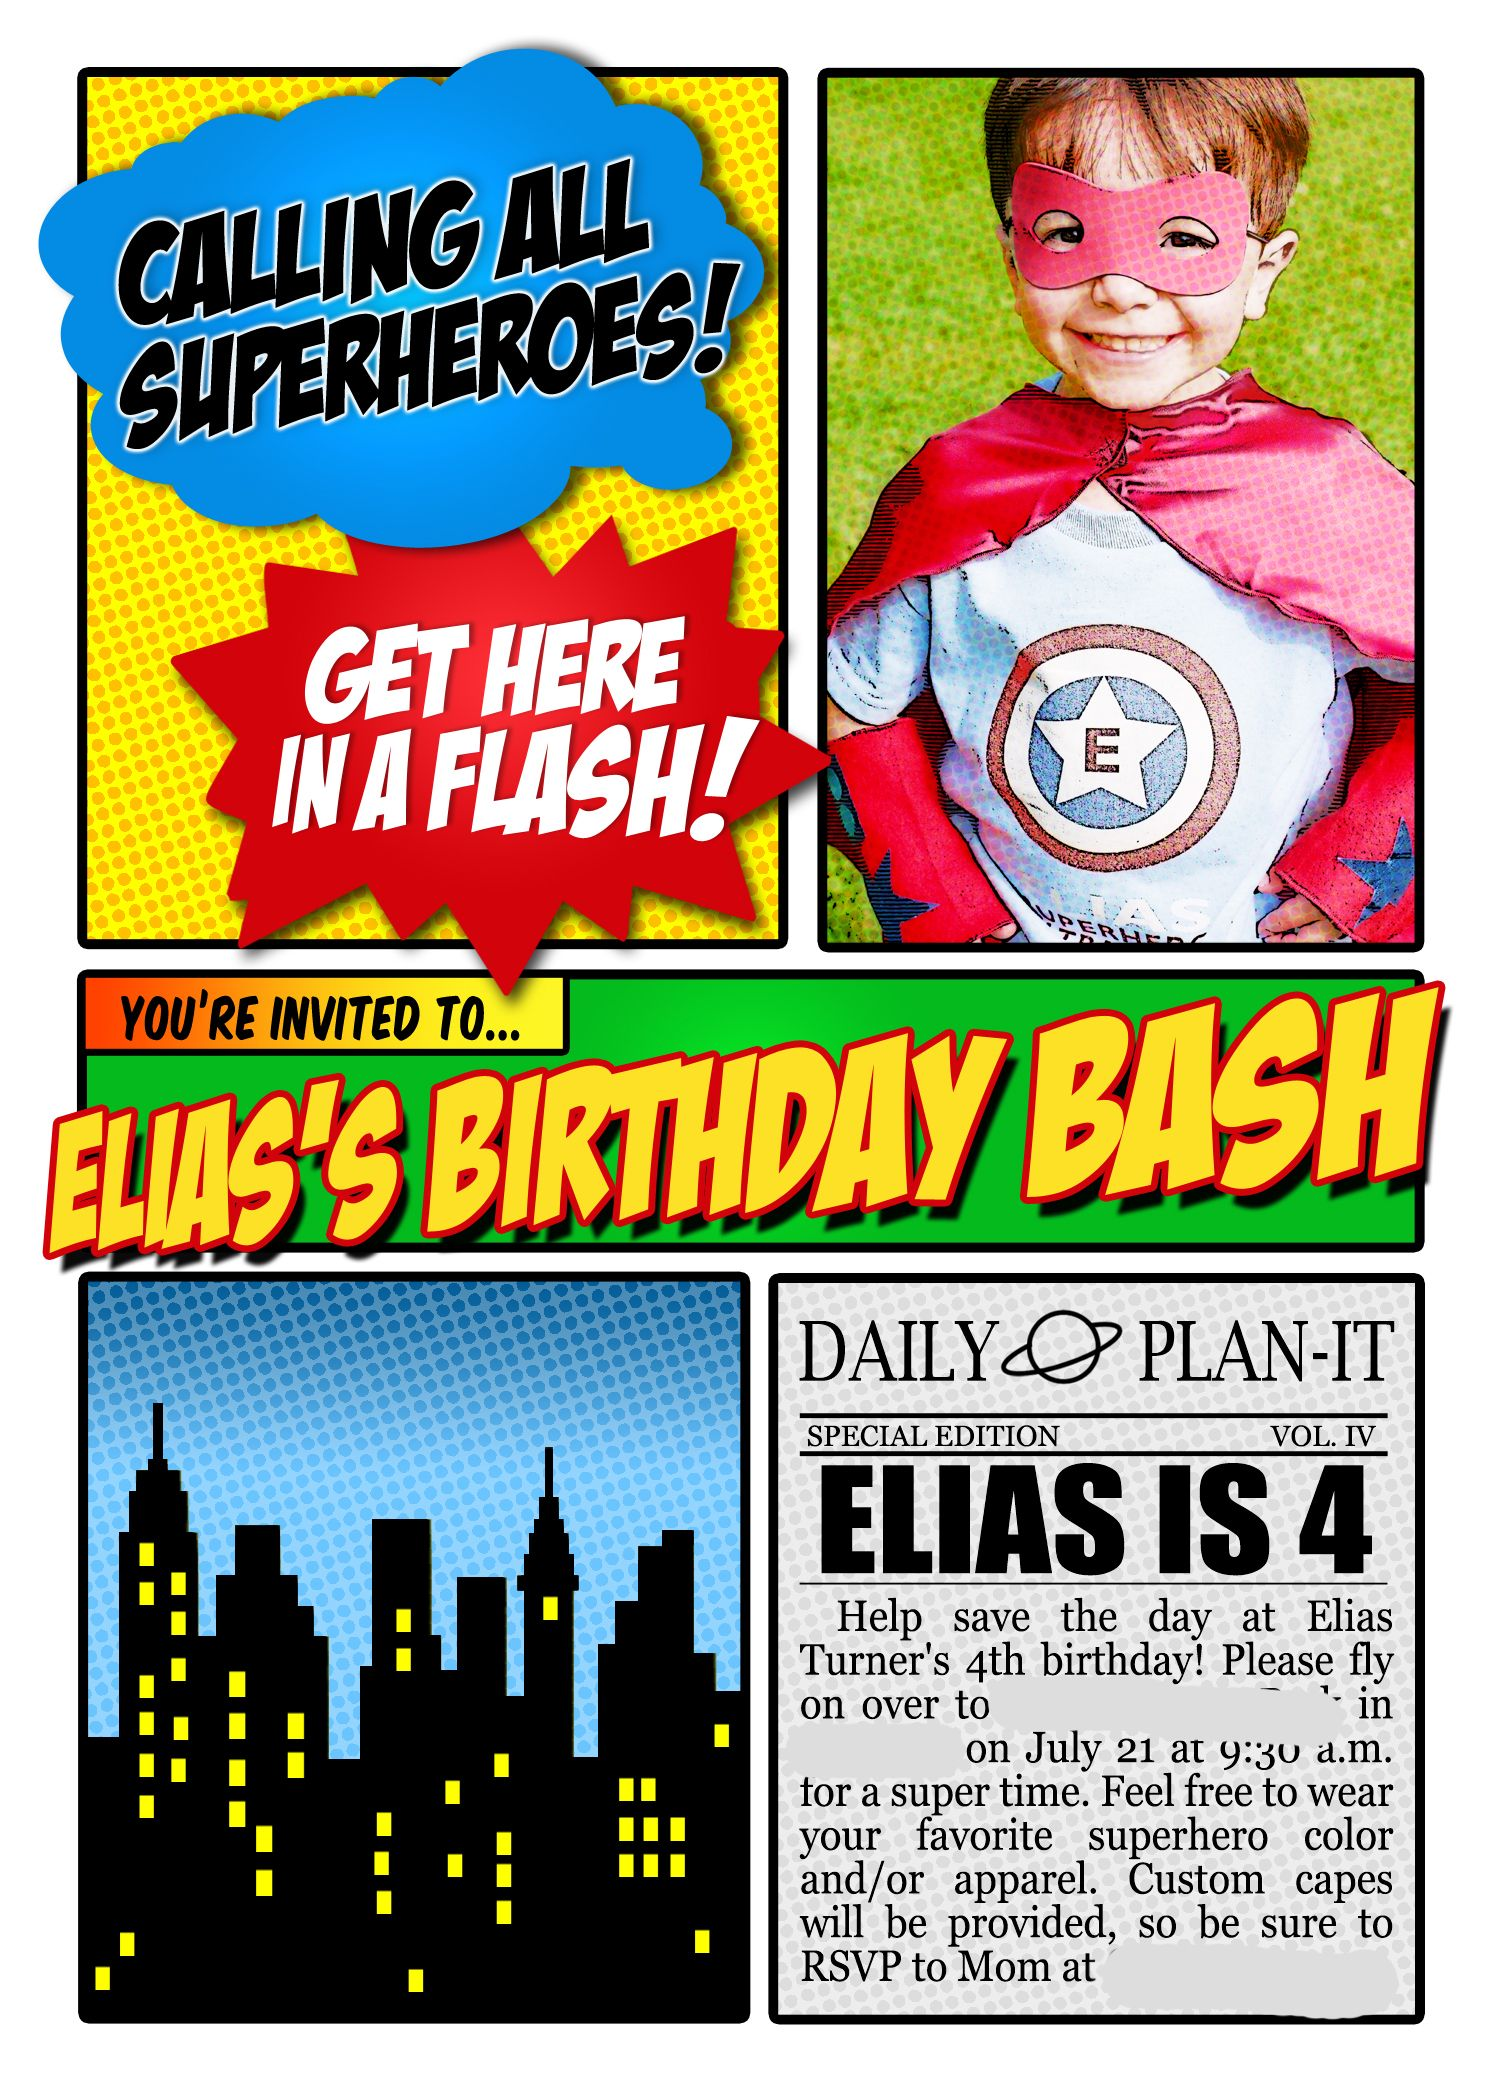 Superhero Birthday Party Pinterest Superhero party Superhero